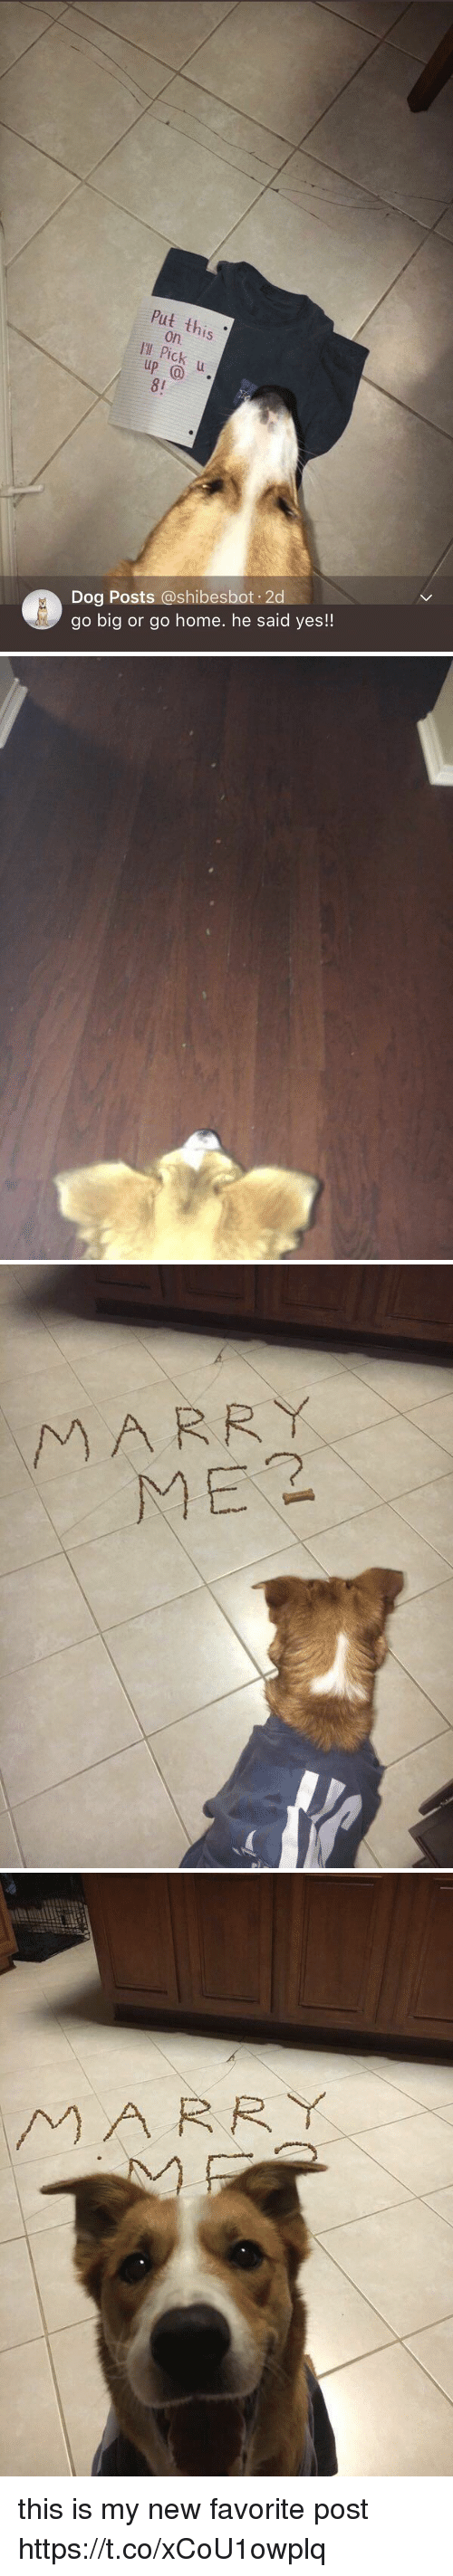 Home, Girl Memes, and Dog: Put this  on.  I'I  8!  Dog Posts @shibesbot 2  go big or go home. he said yes!!   MARR Y  ME2   MARRY this is my new favorite post https://t.co/xCoU1owplq